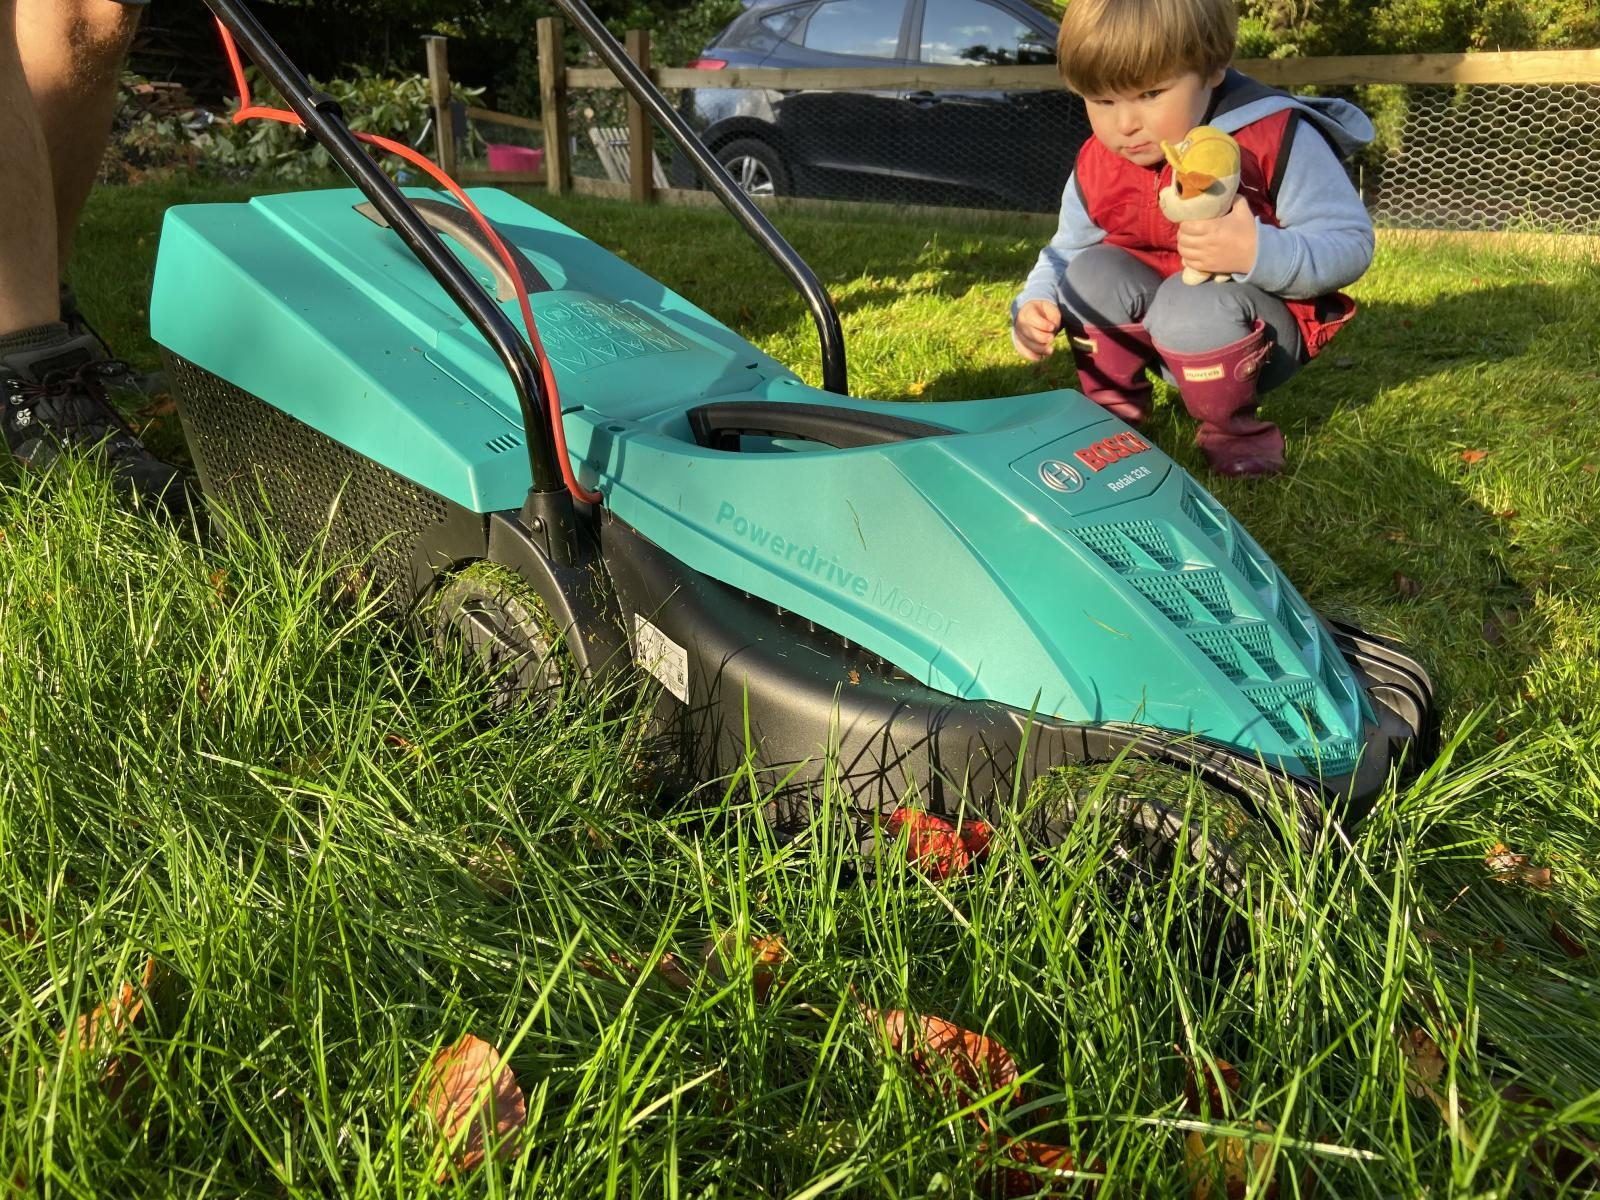 Final mow of the lawn with Bosch lawnmower